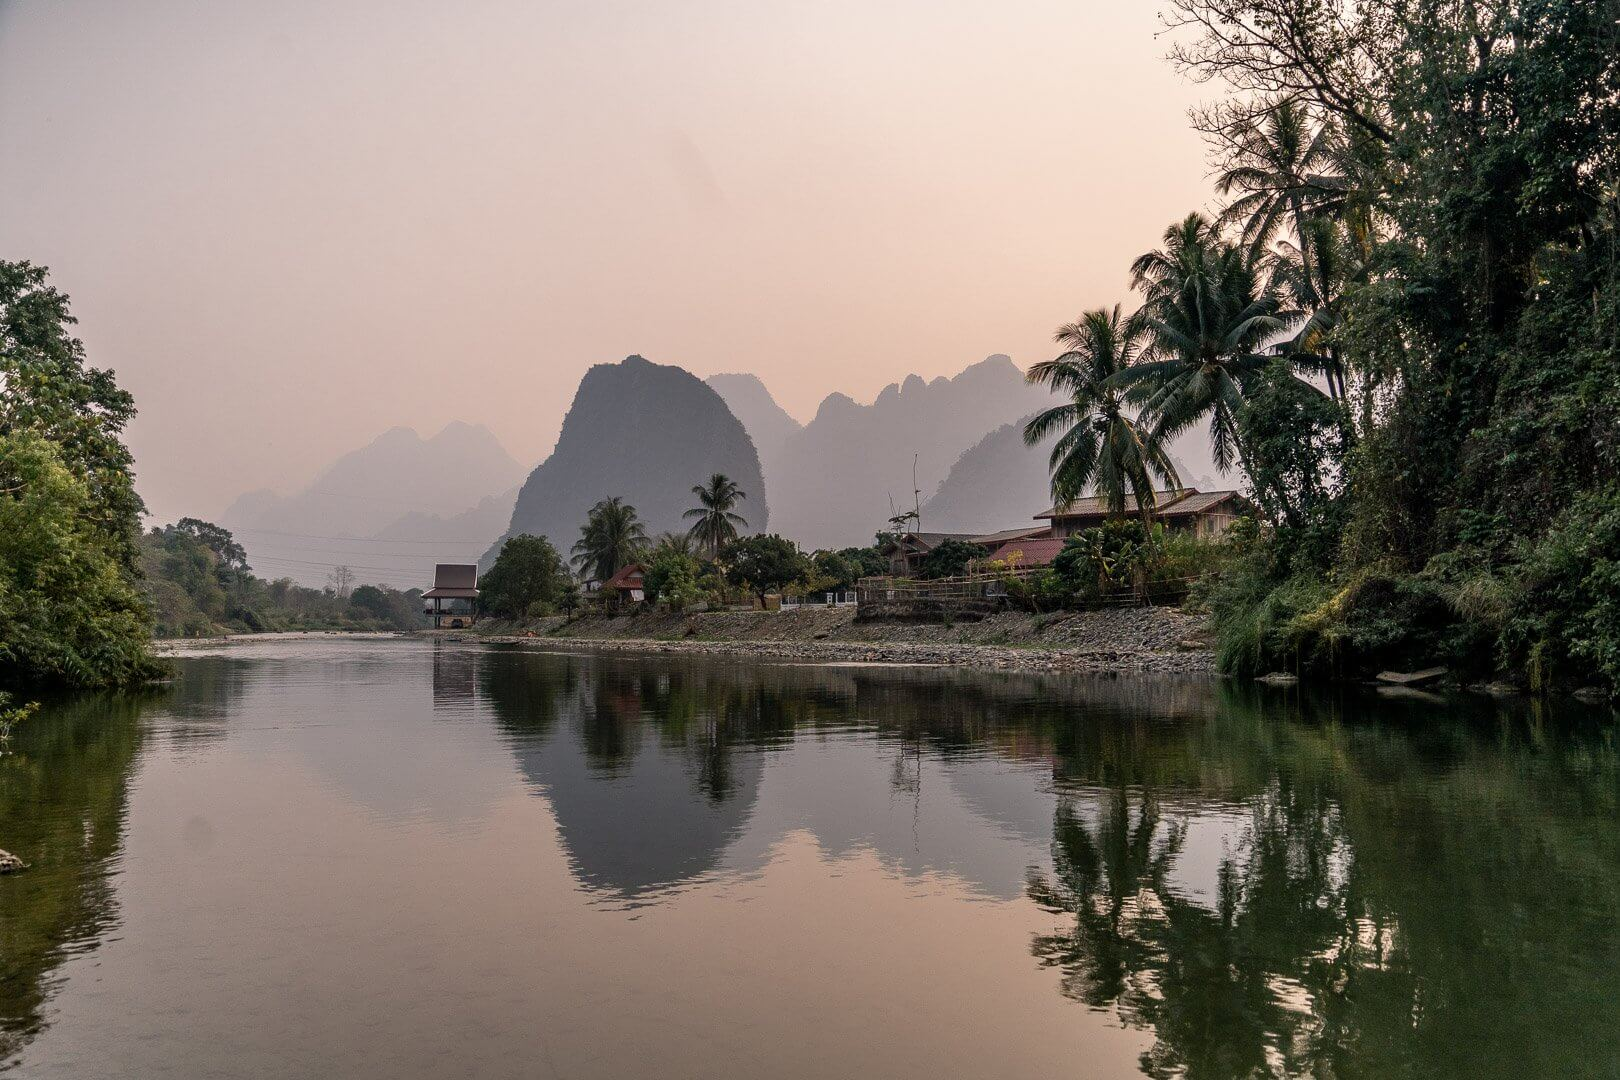 The view of Pha Tang Village from the bridge near Vang Vieng, Laos